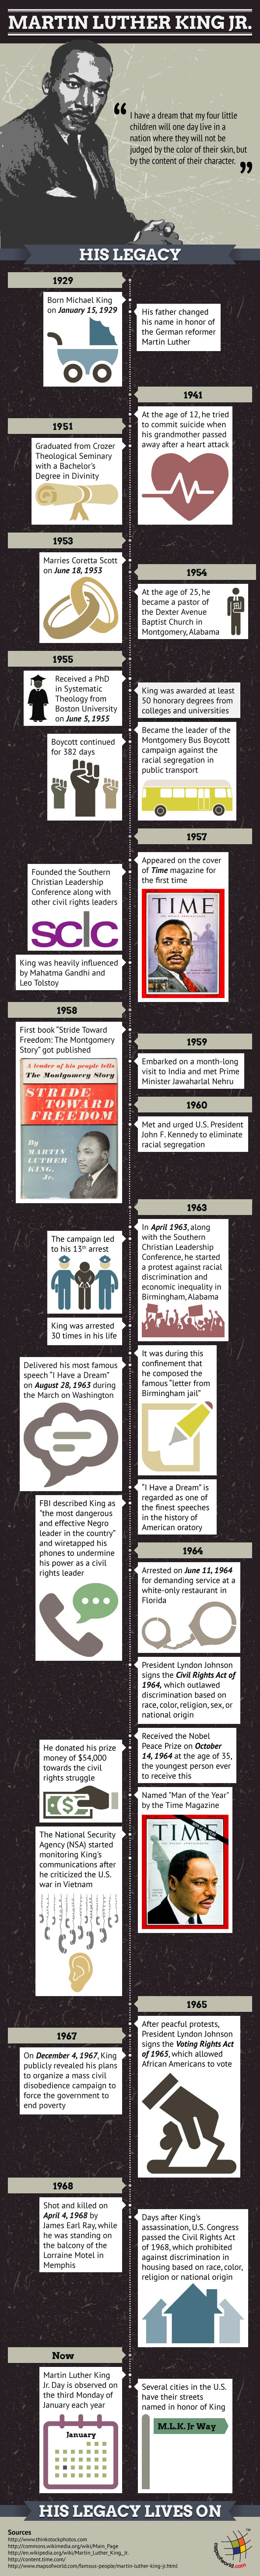 Infographic on Martin Luther King Jr.